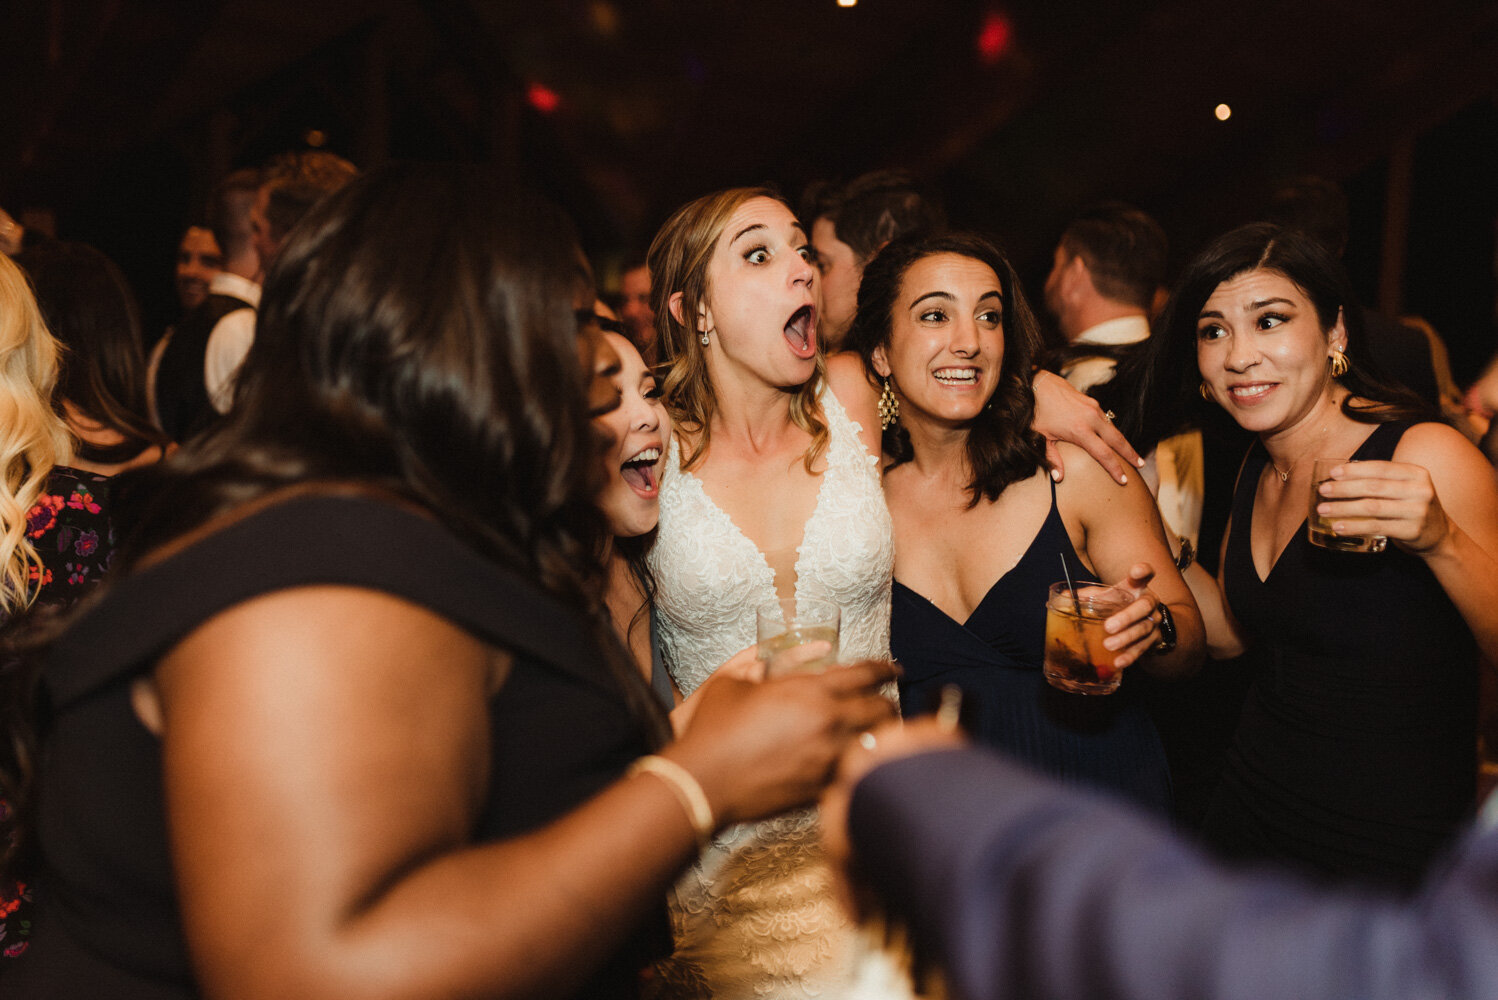 Edgewood wedding, photo of bride having a blast